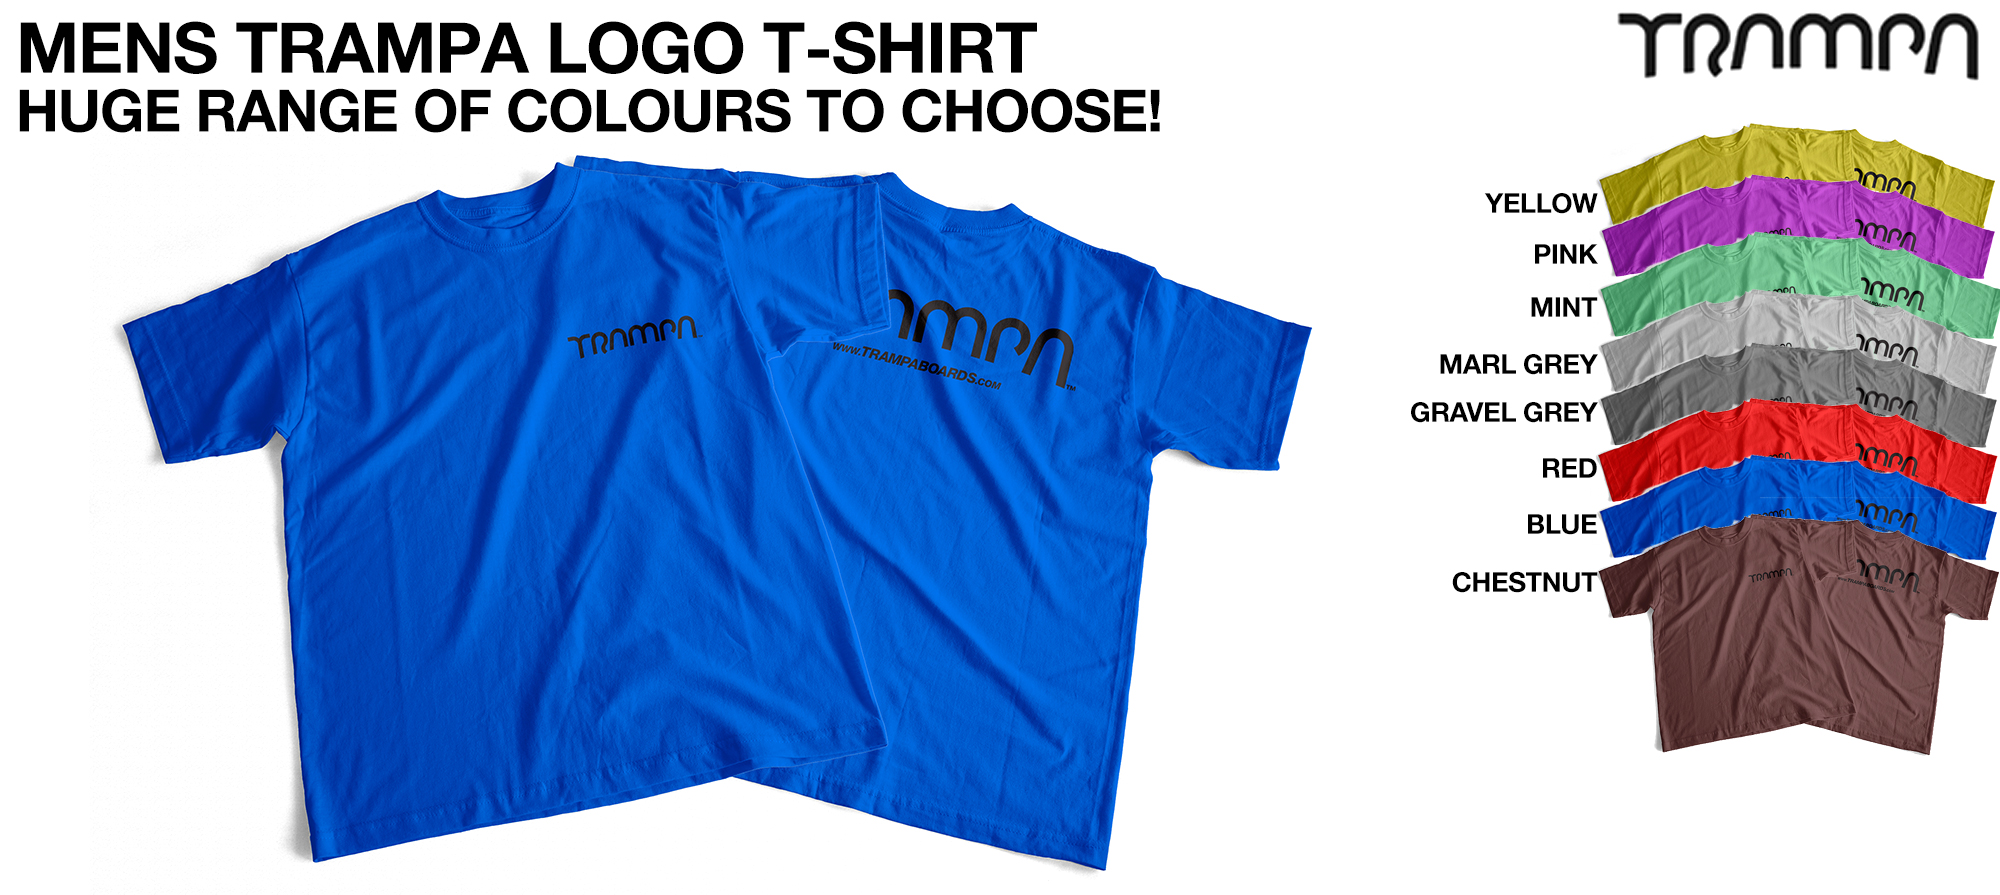 MENS TRAMPA LOGO T-Shirt - Huge choice of colours!